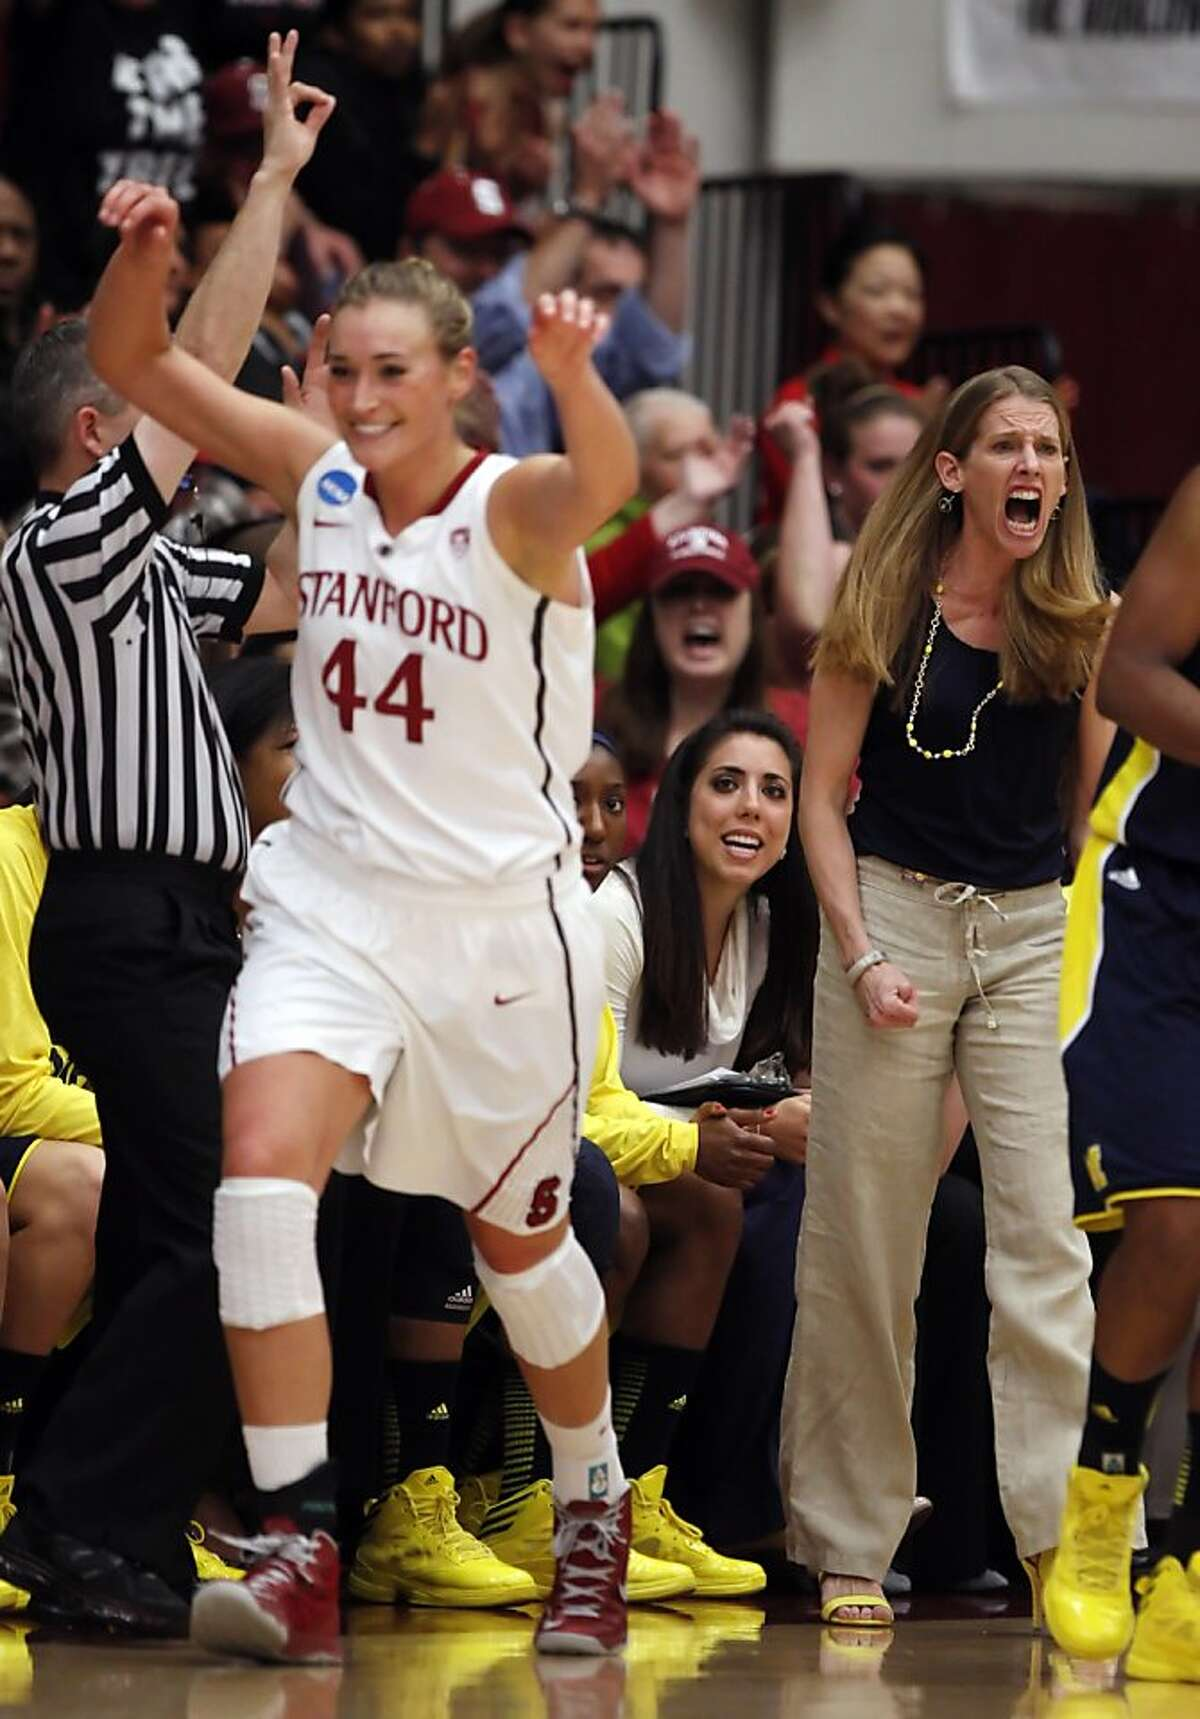 Michigan Head Coach Kim Barnes Arico reacts after Joslyn Tinkle scores a three point shot in the first half. The Stanford Cardinal played the Michigan Wolverines at Maples Pavilion in Stanford, Calif., on Tuesday, March 26, 2013.